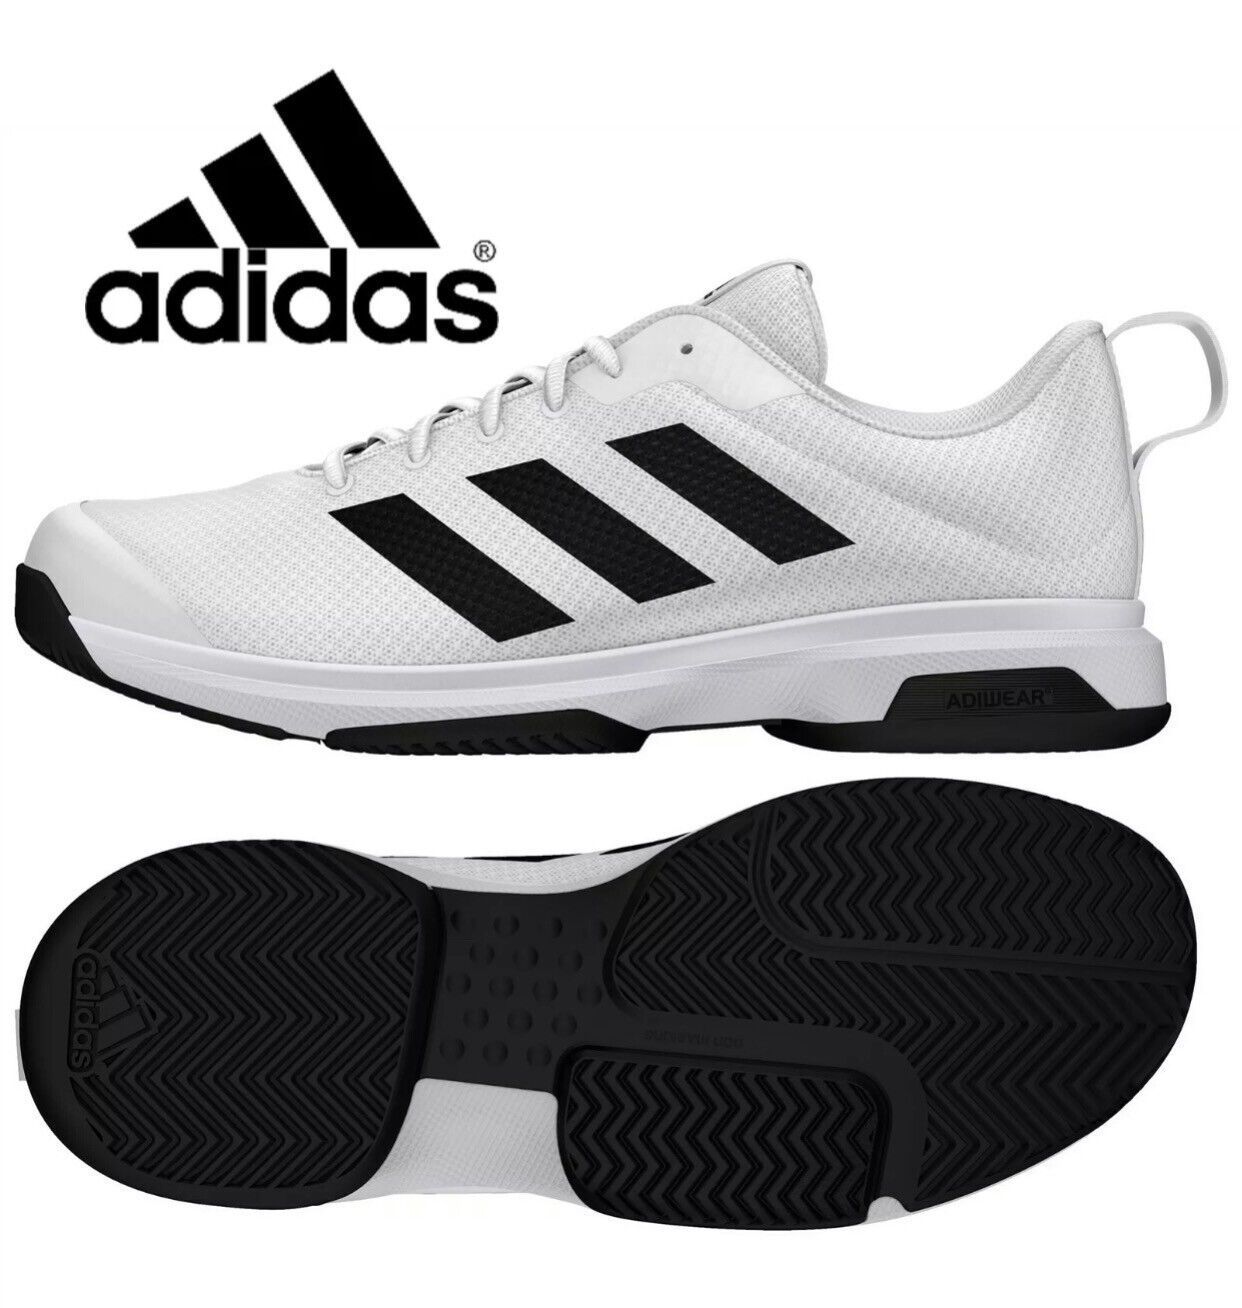 NEW Adidas Mens Running Shoes Men's Athletic Sneaker White / Black Size 11